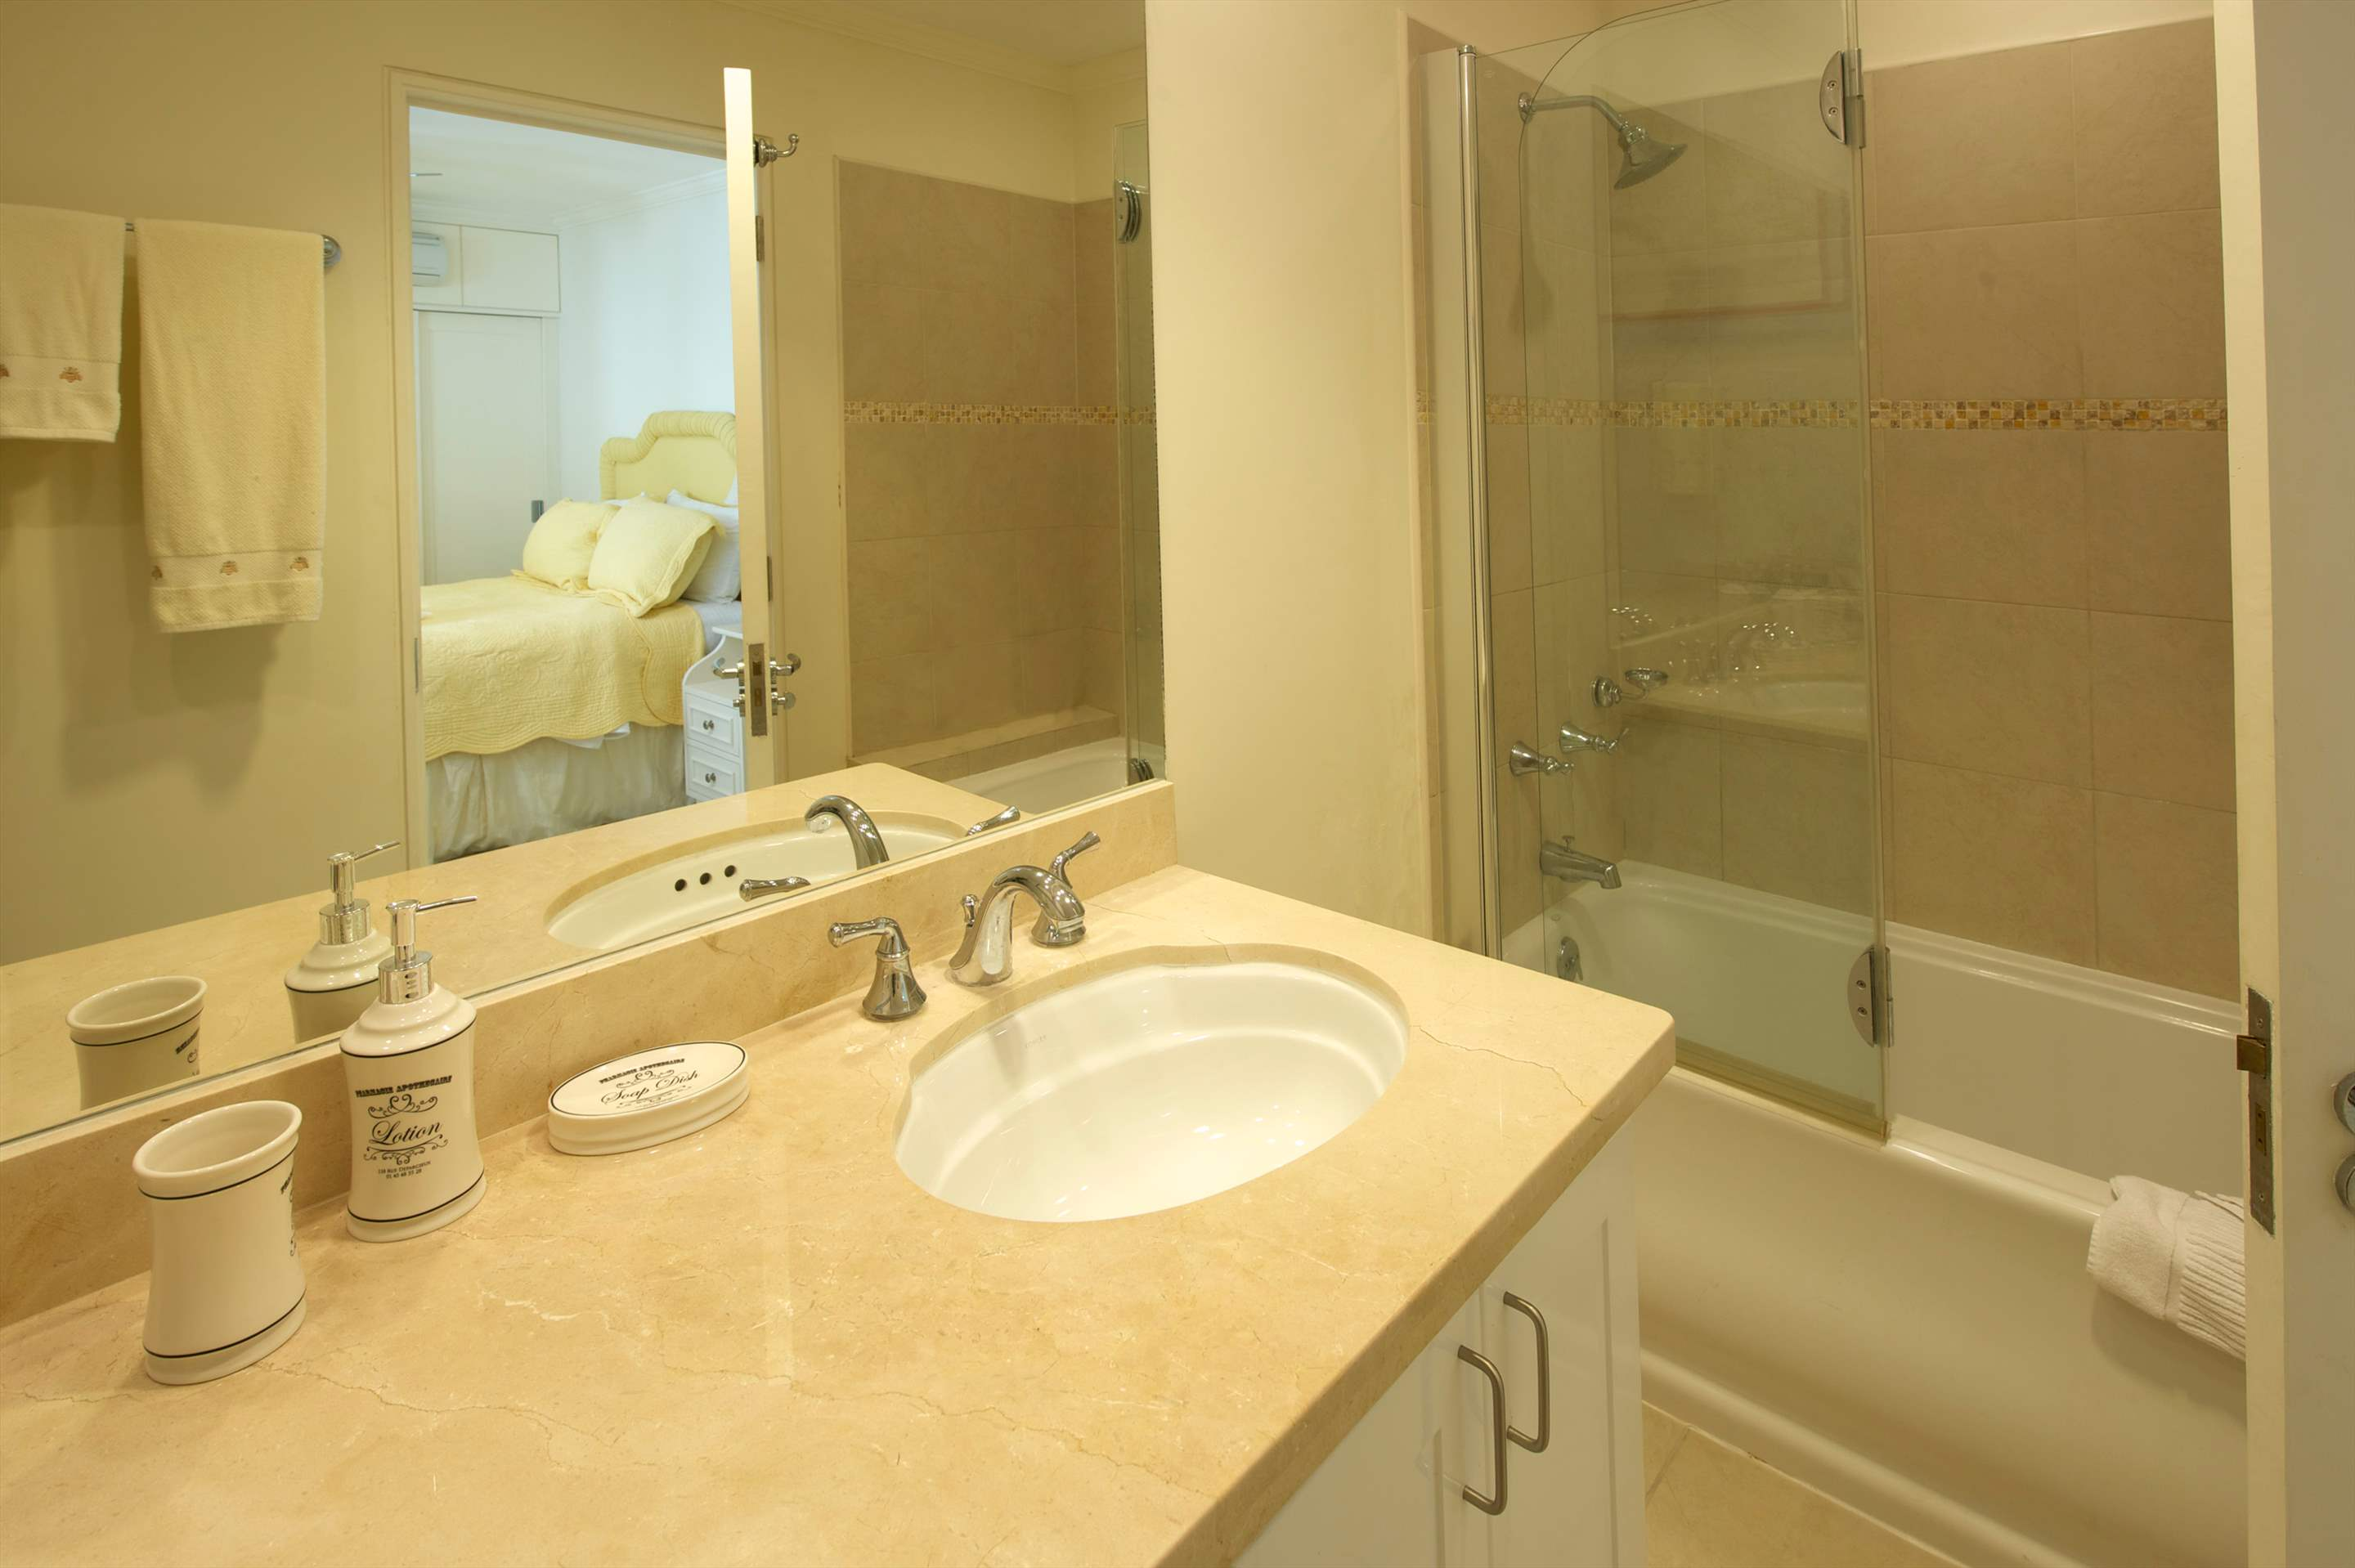 Palm Beach 110, 3 bedroom apartment in St. Lawrence Gap & South Coast, Barbados Photo #15